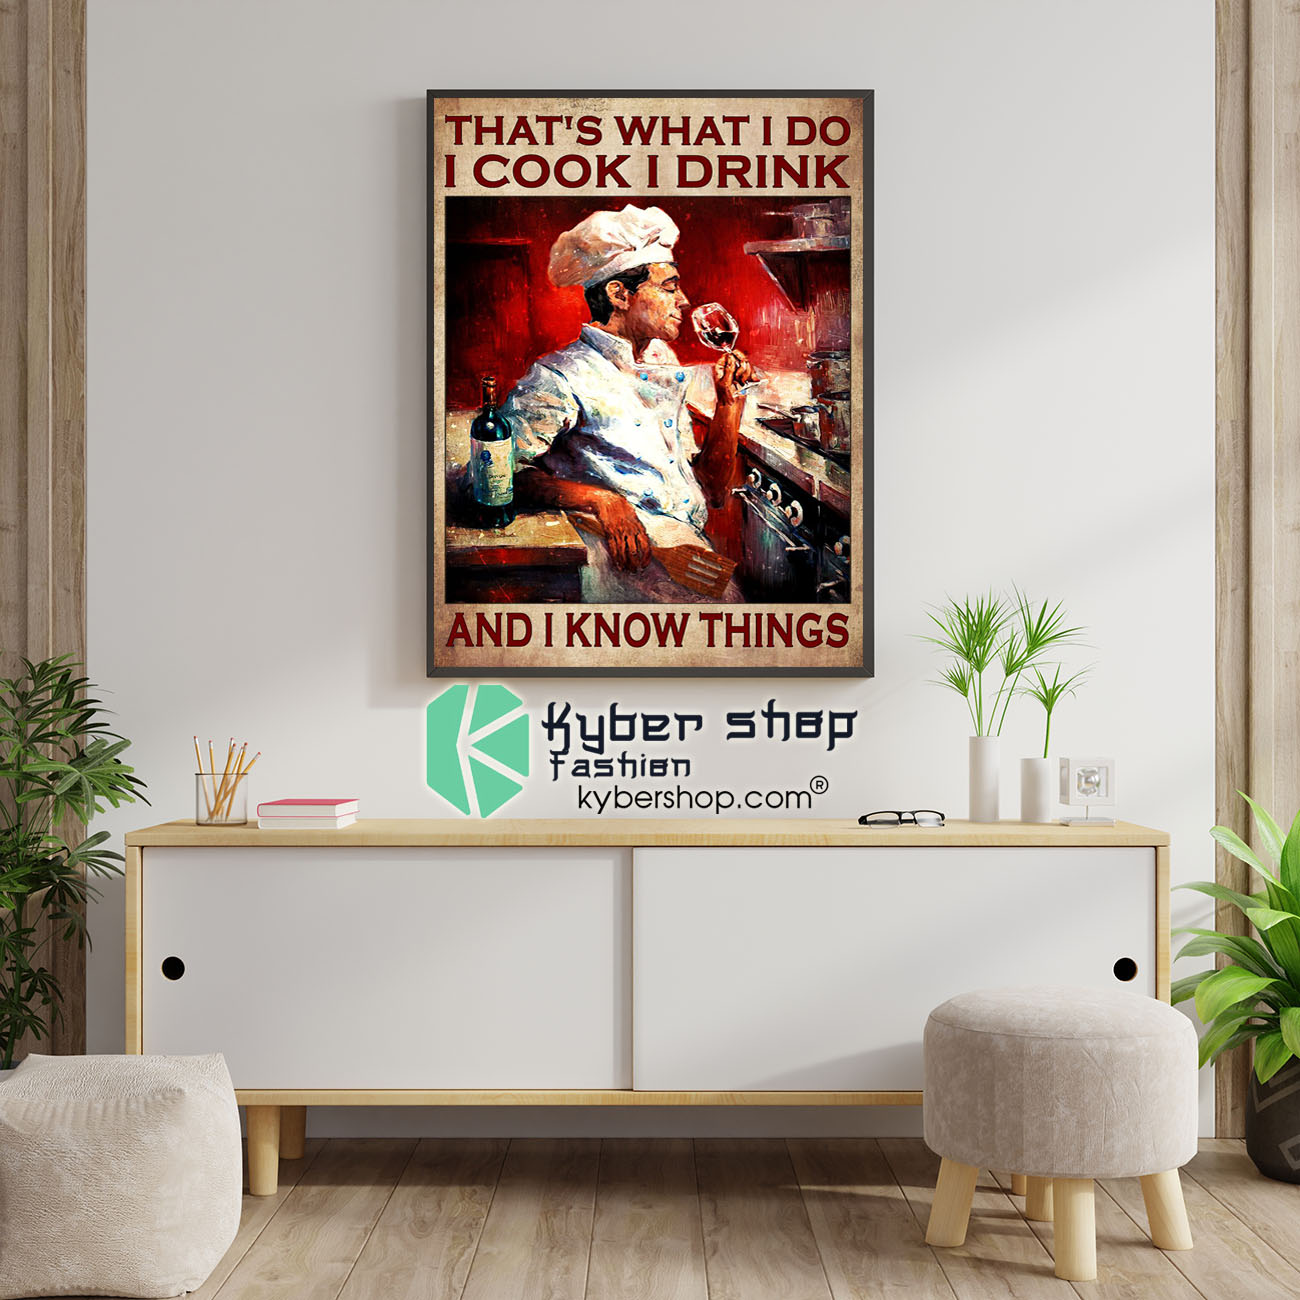 Thats what I do I cook I drink and I know things poster 1